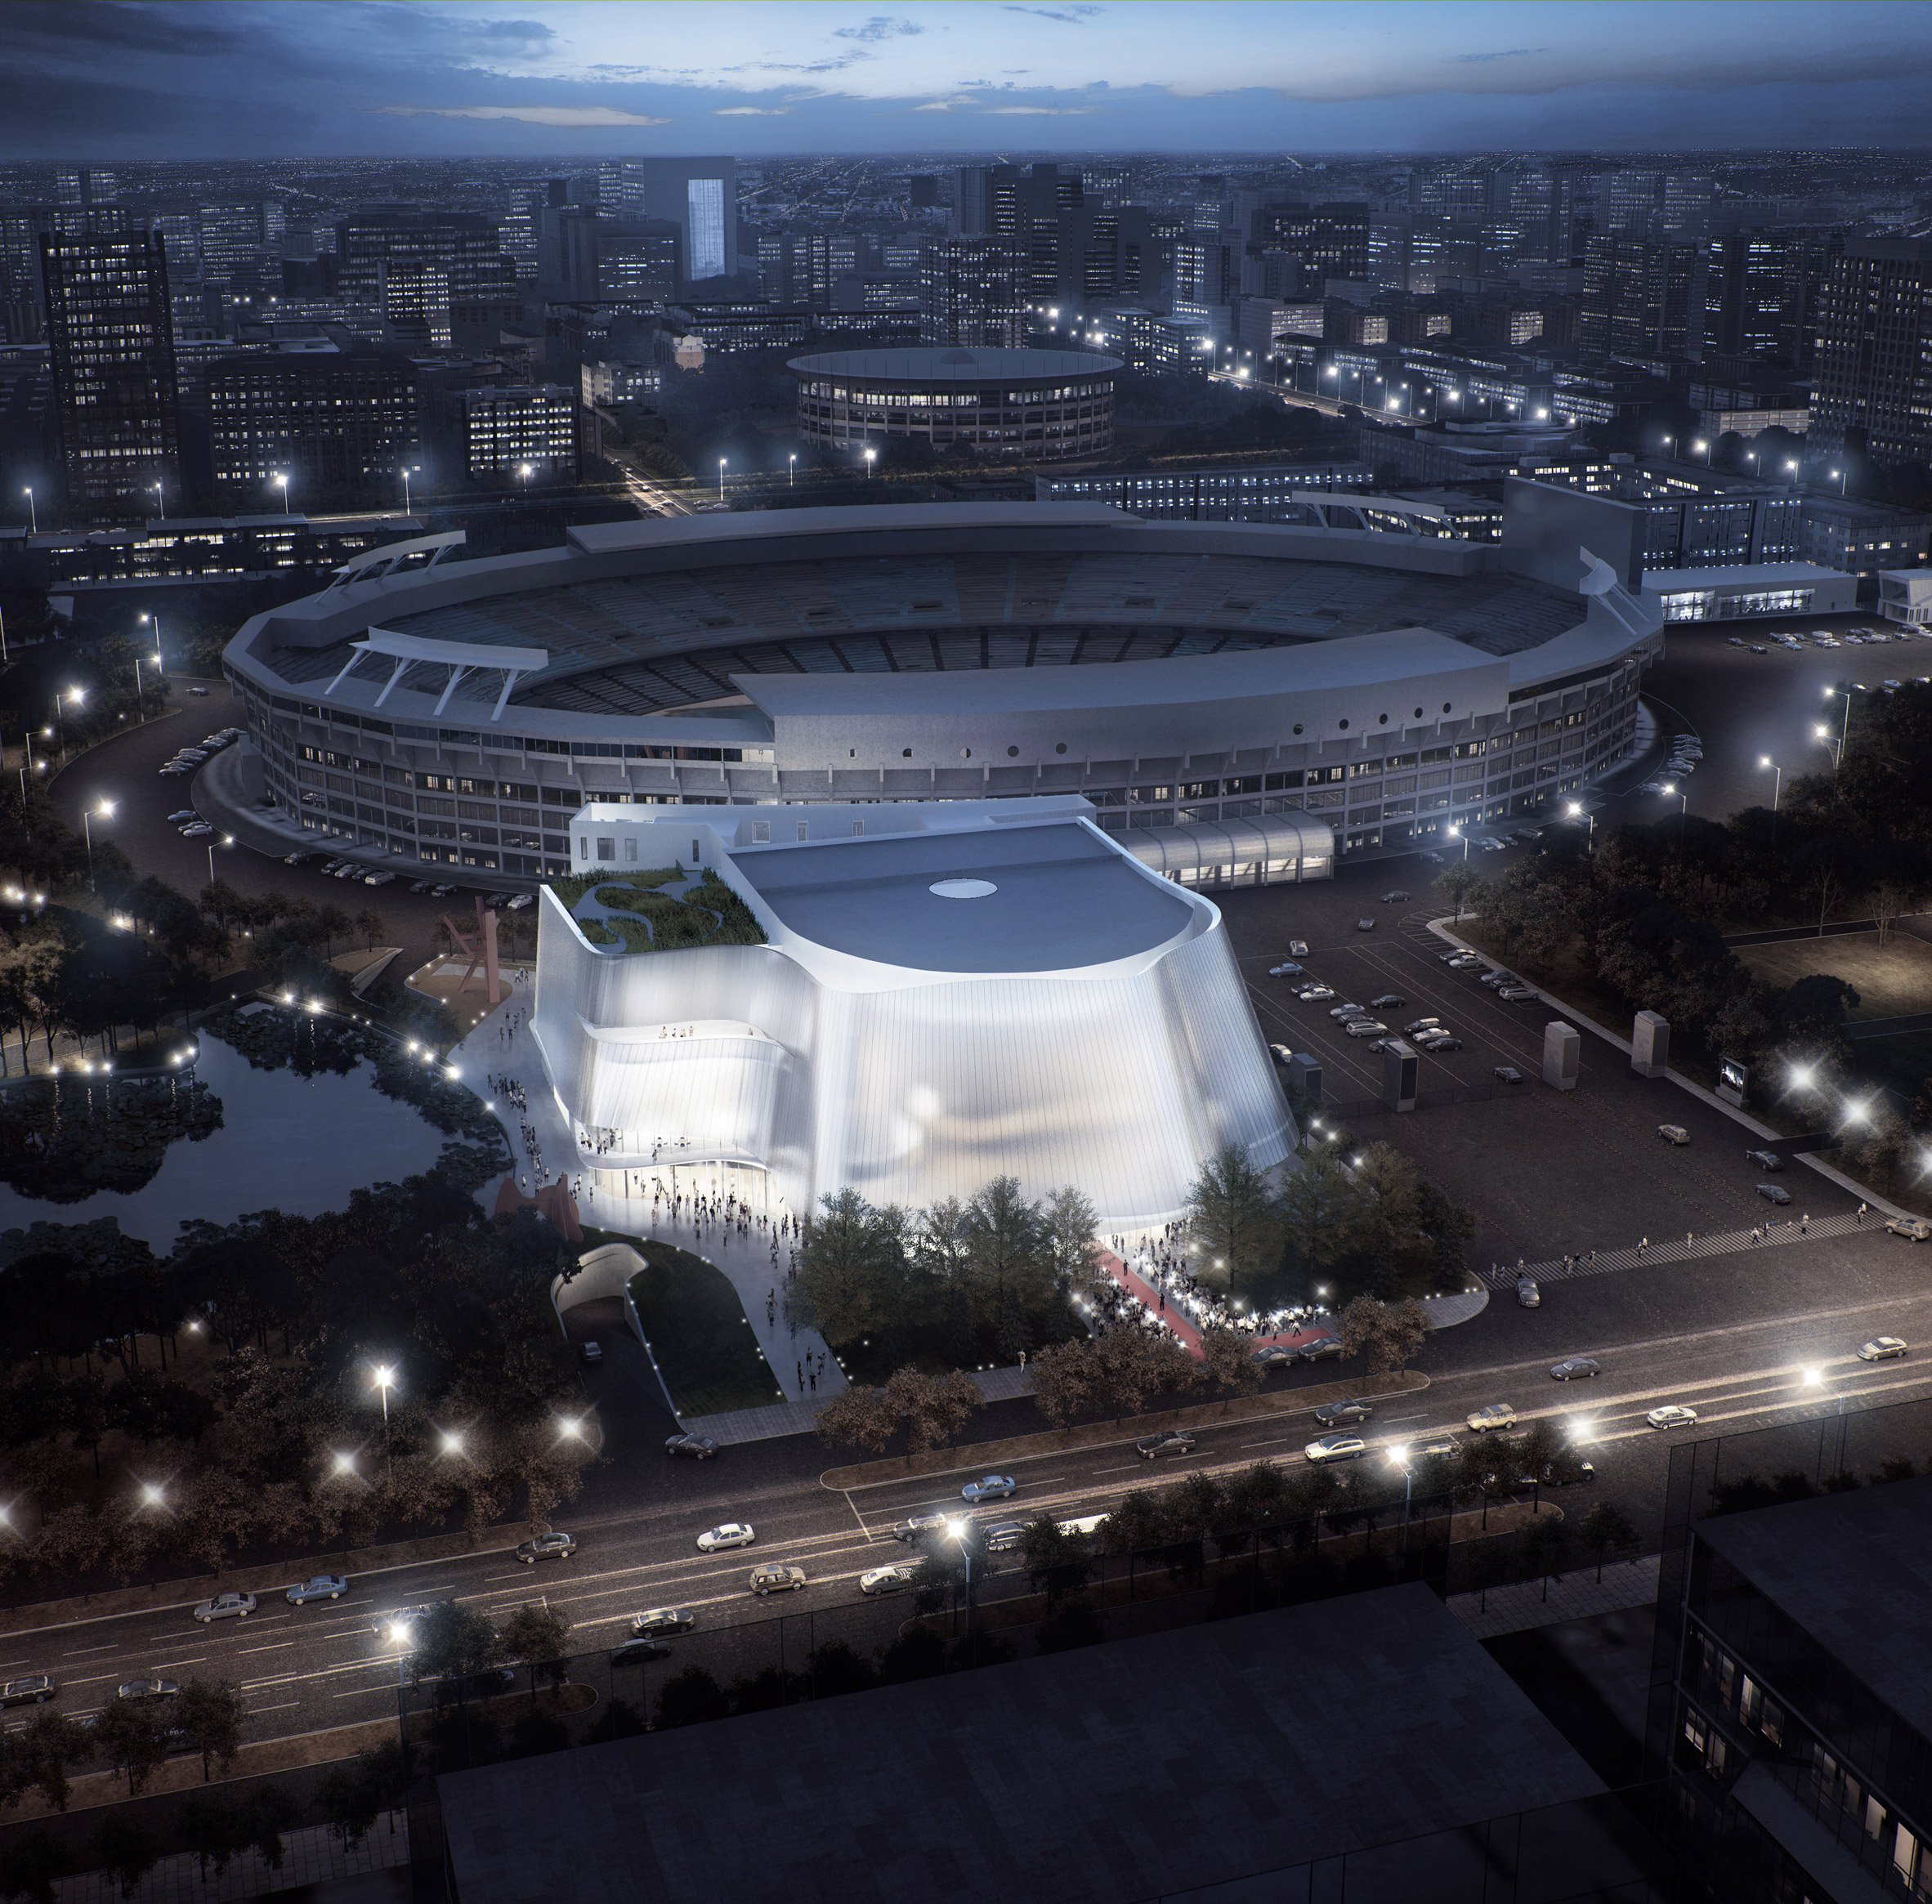 MAD reveals plans for translucent China Philharmonic Hall in Beijing